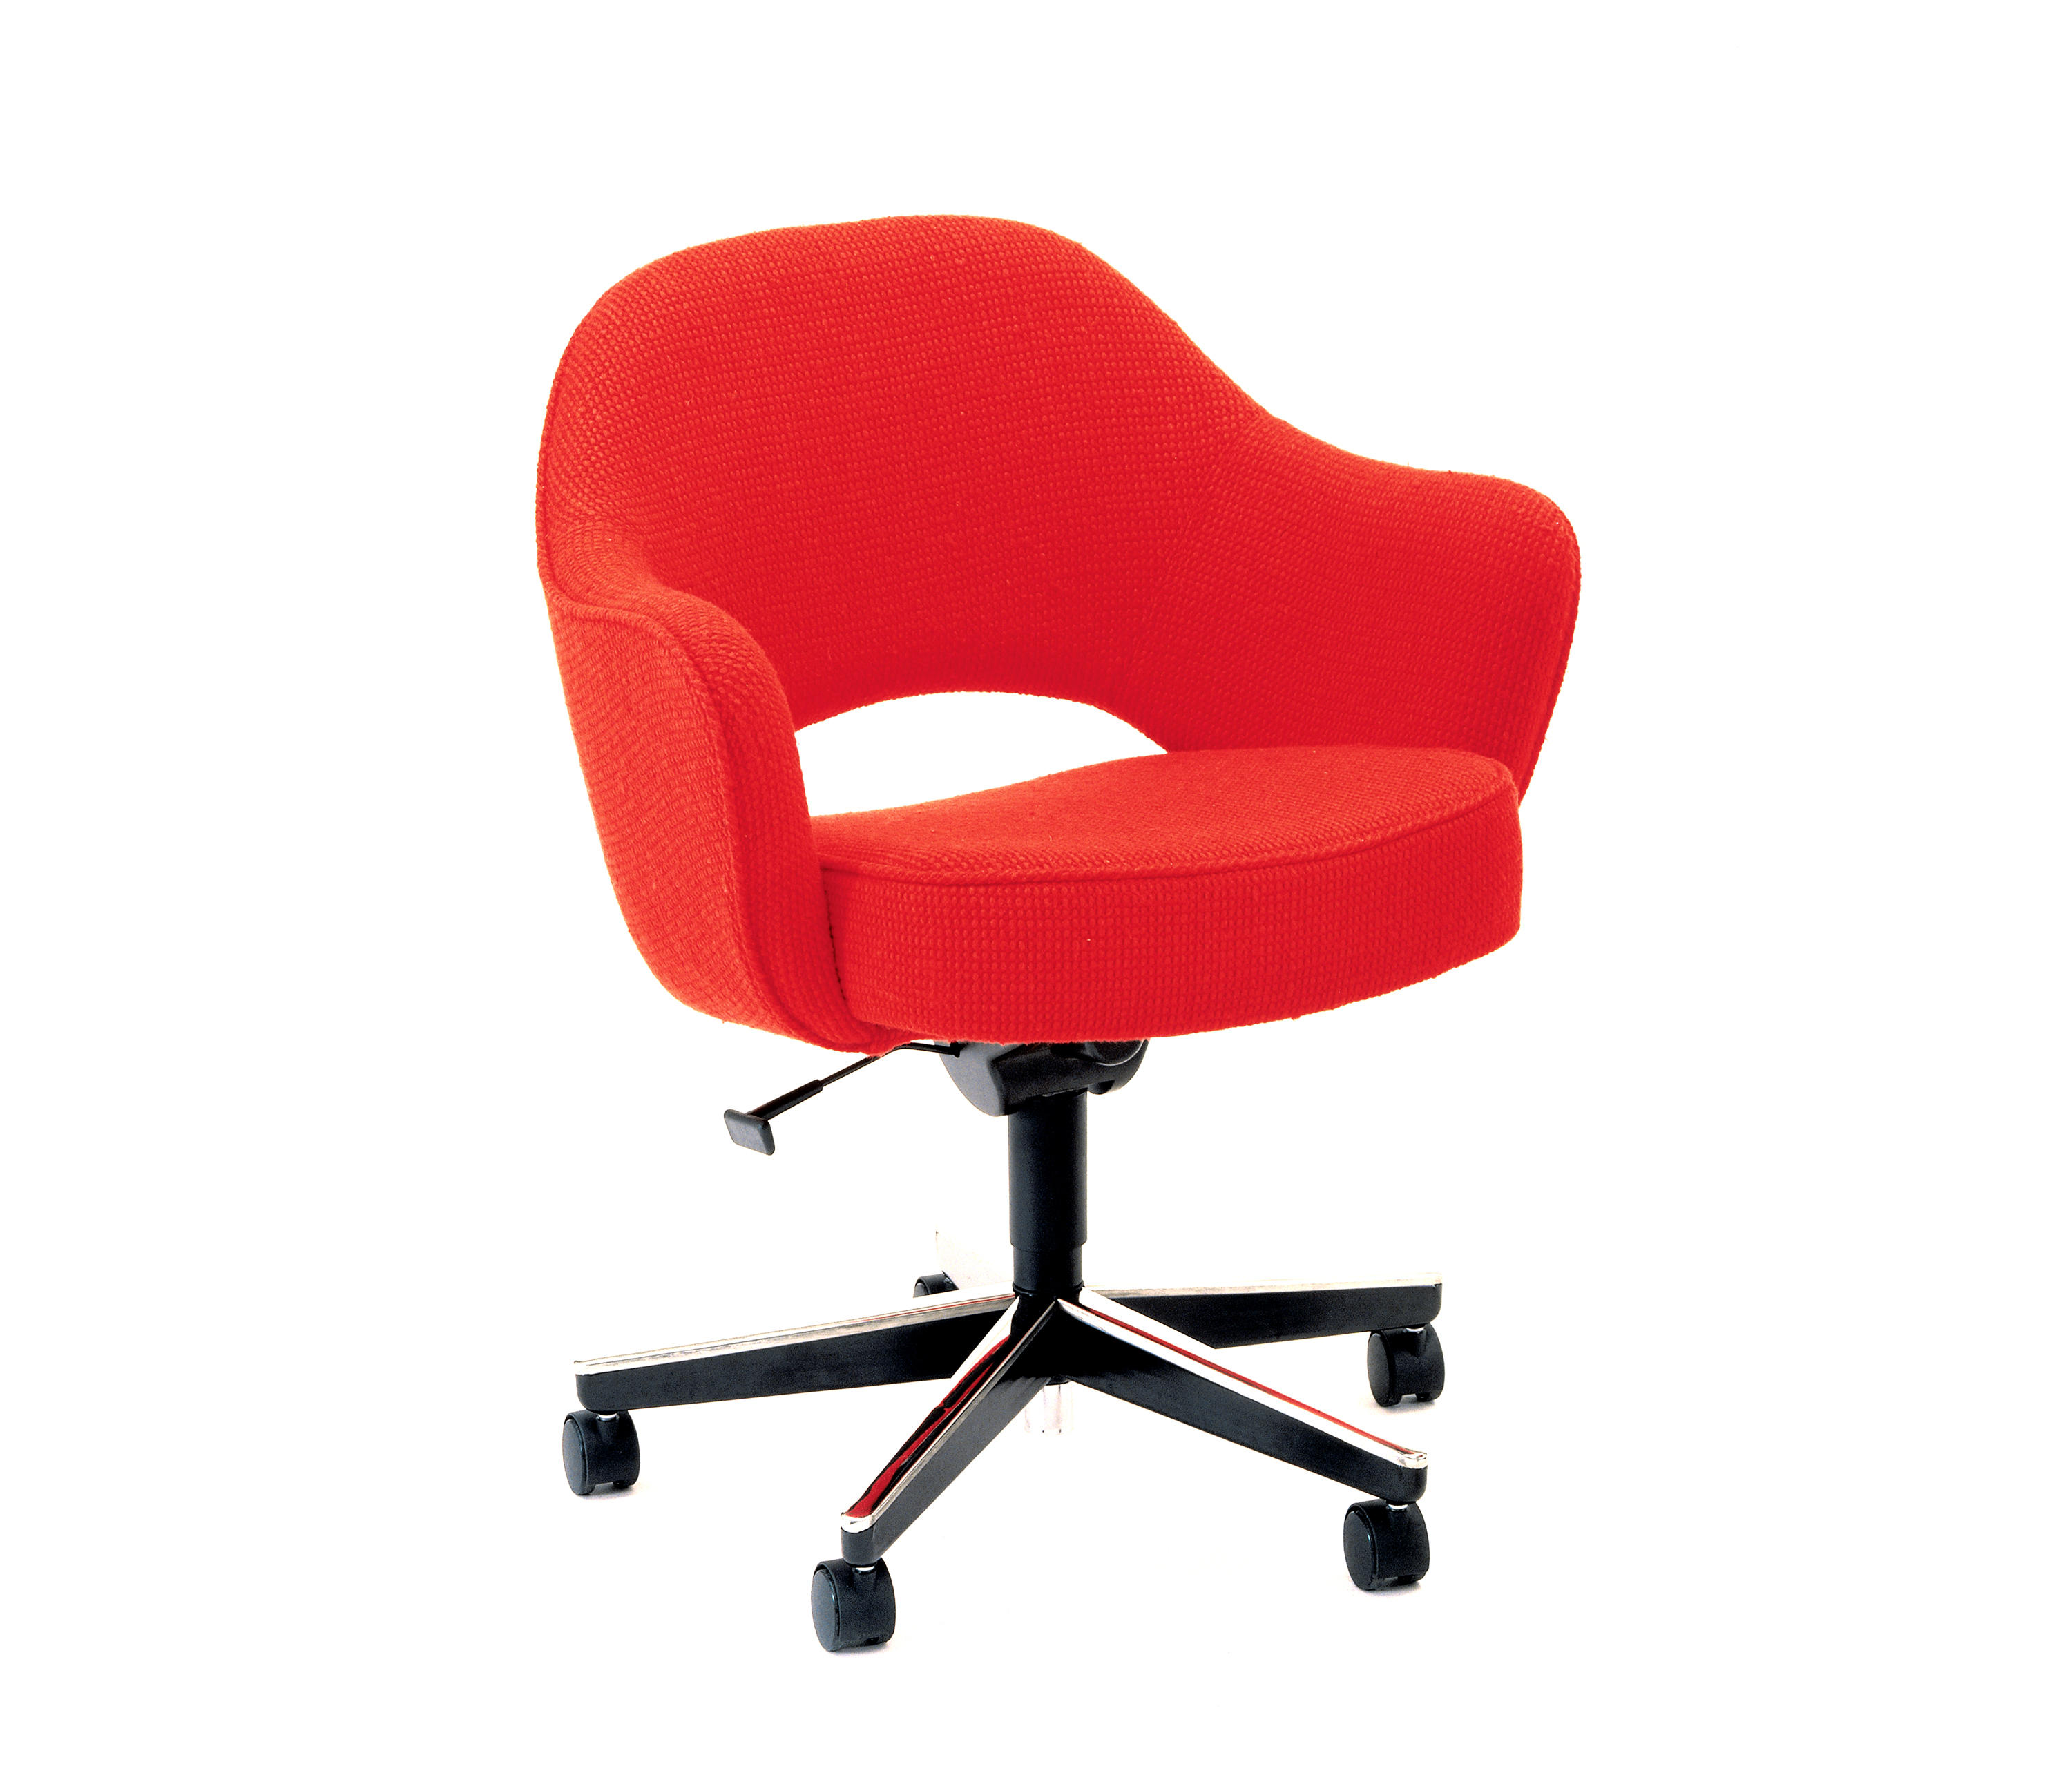 Saarinen Conference Chair By Knoll International | Chairs